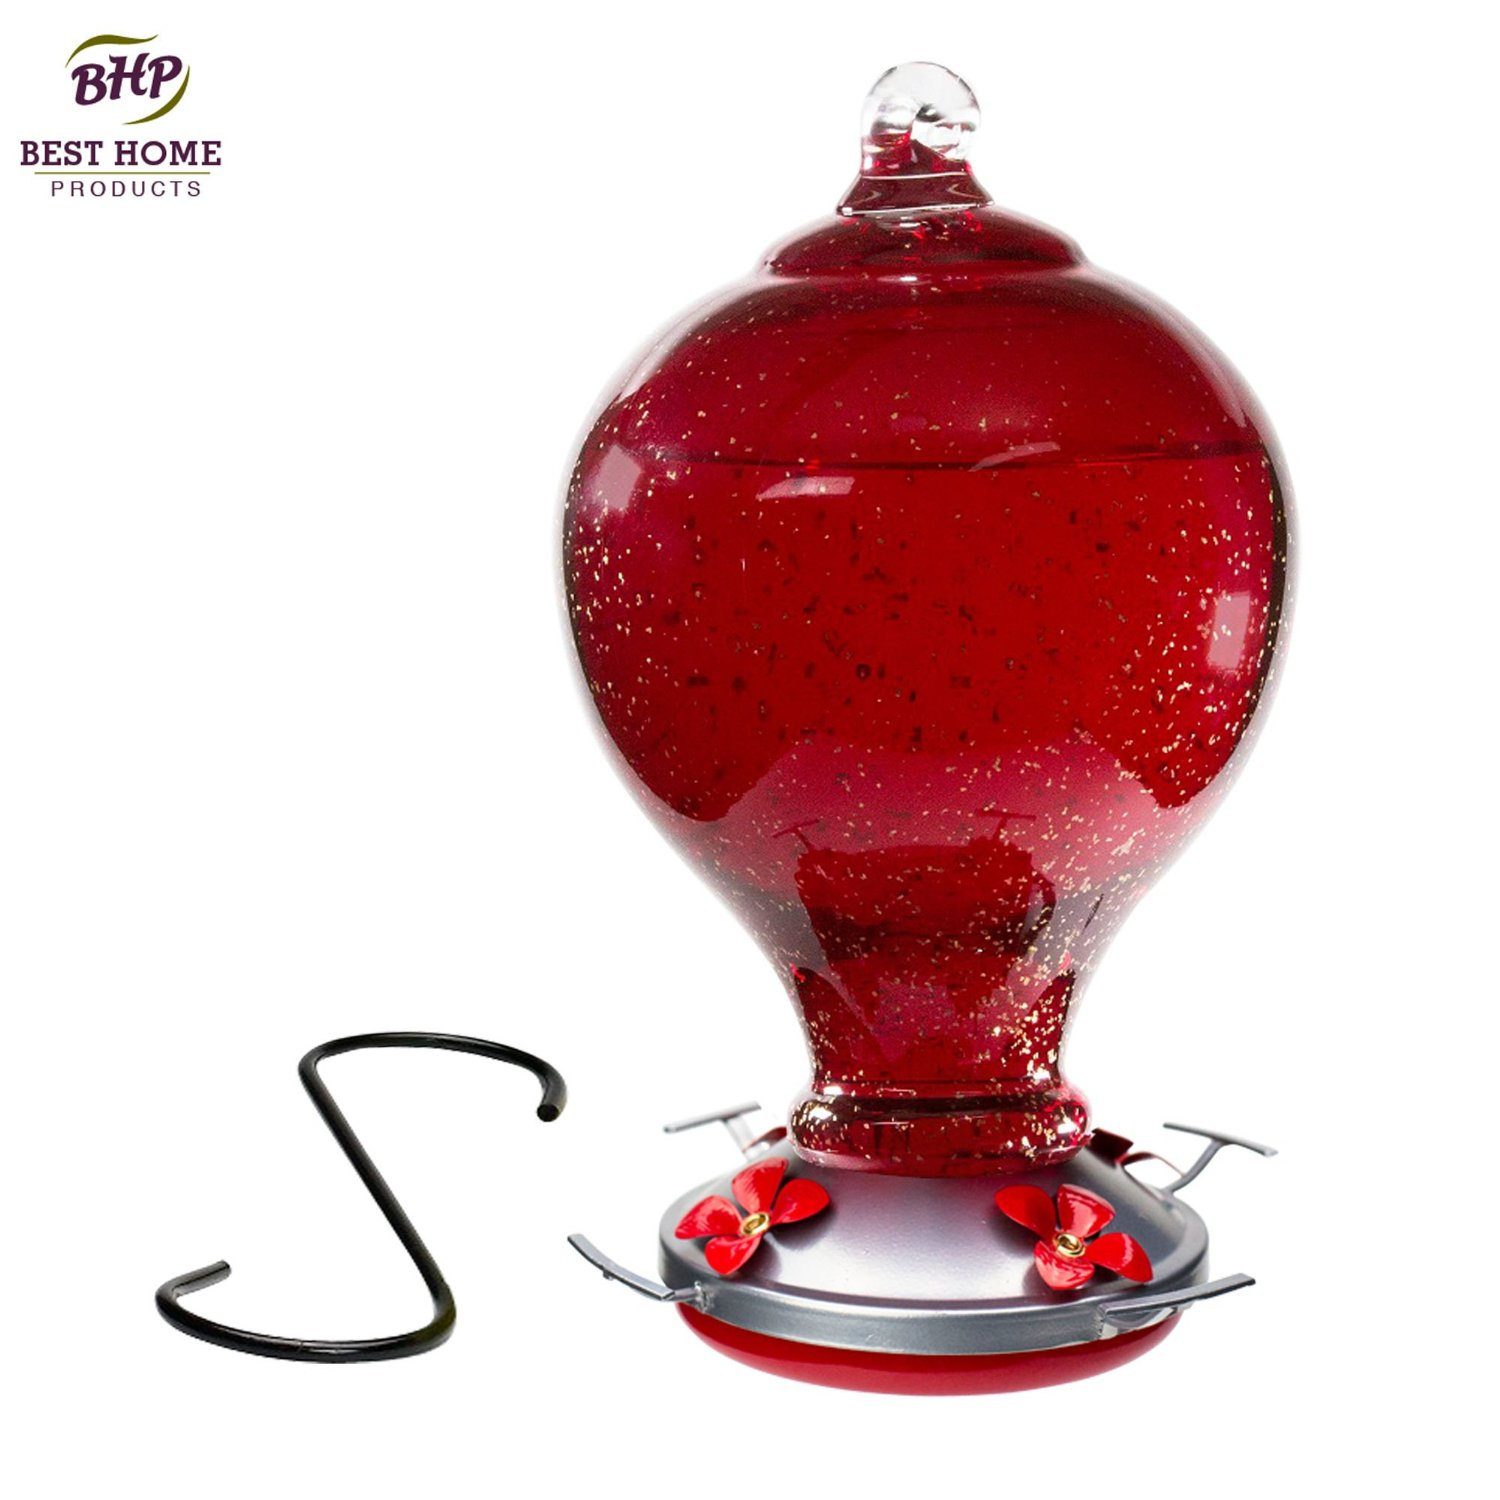 Blown Glass Hummingbird Feeder With Perch Red Cherry